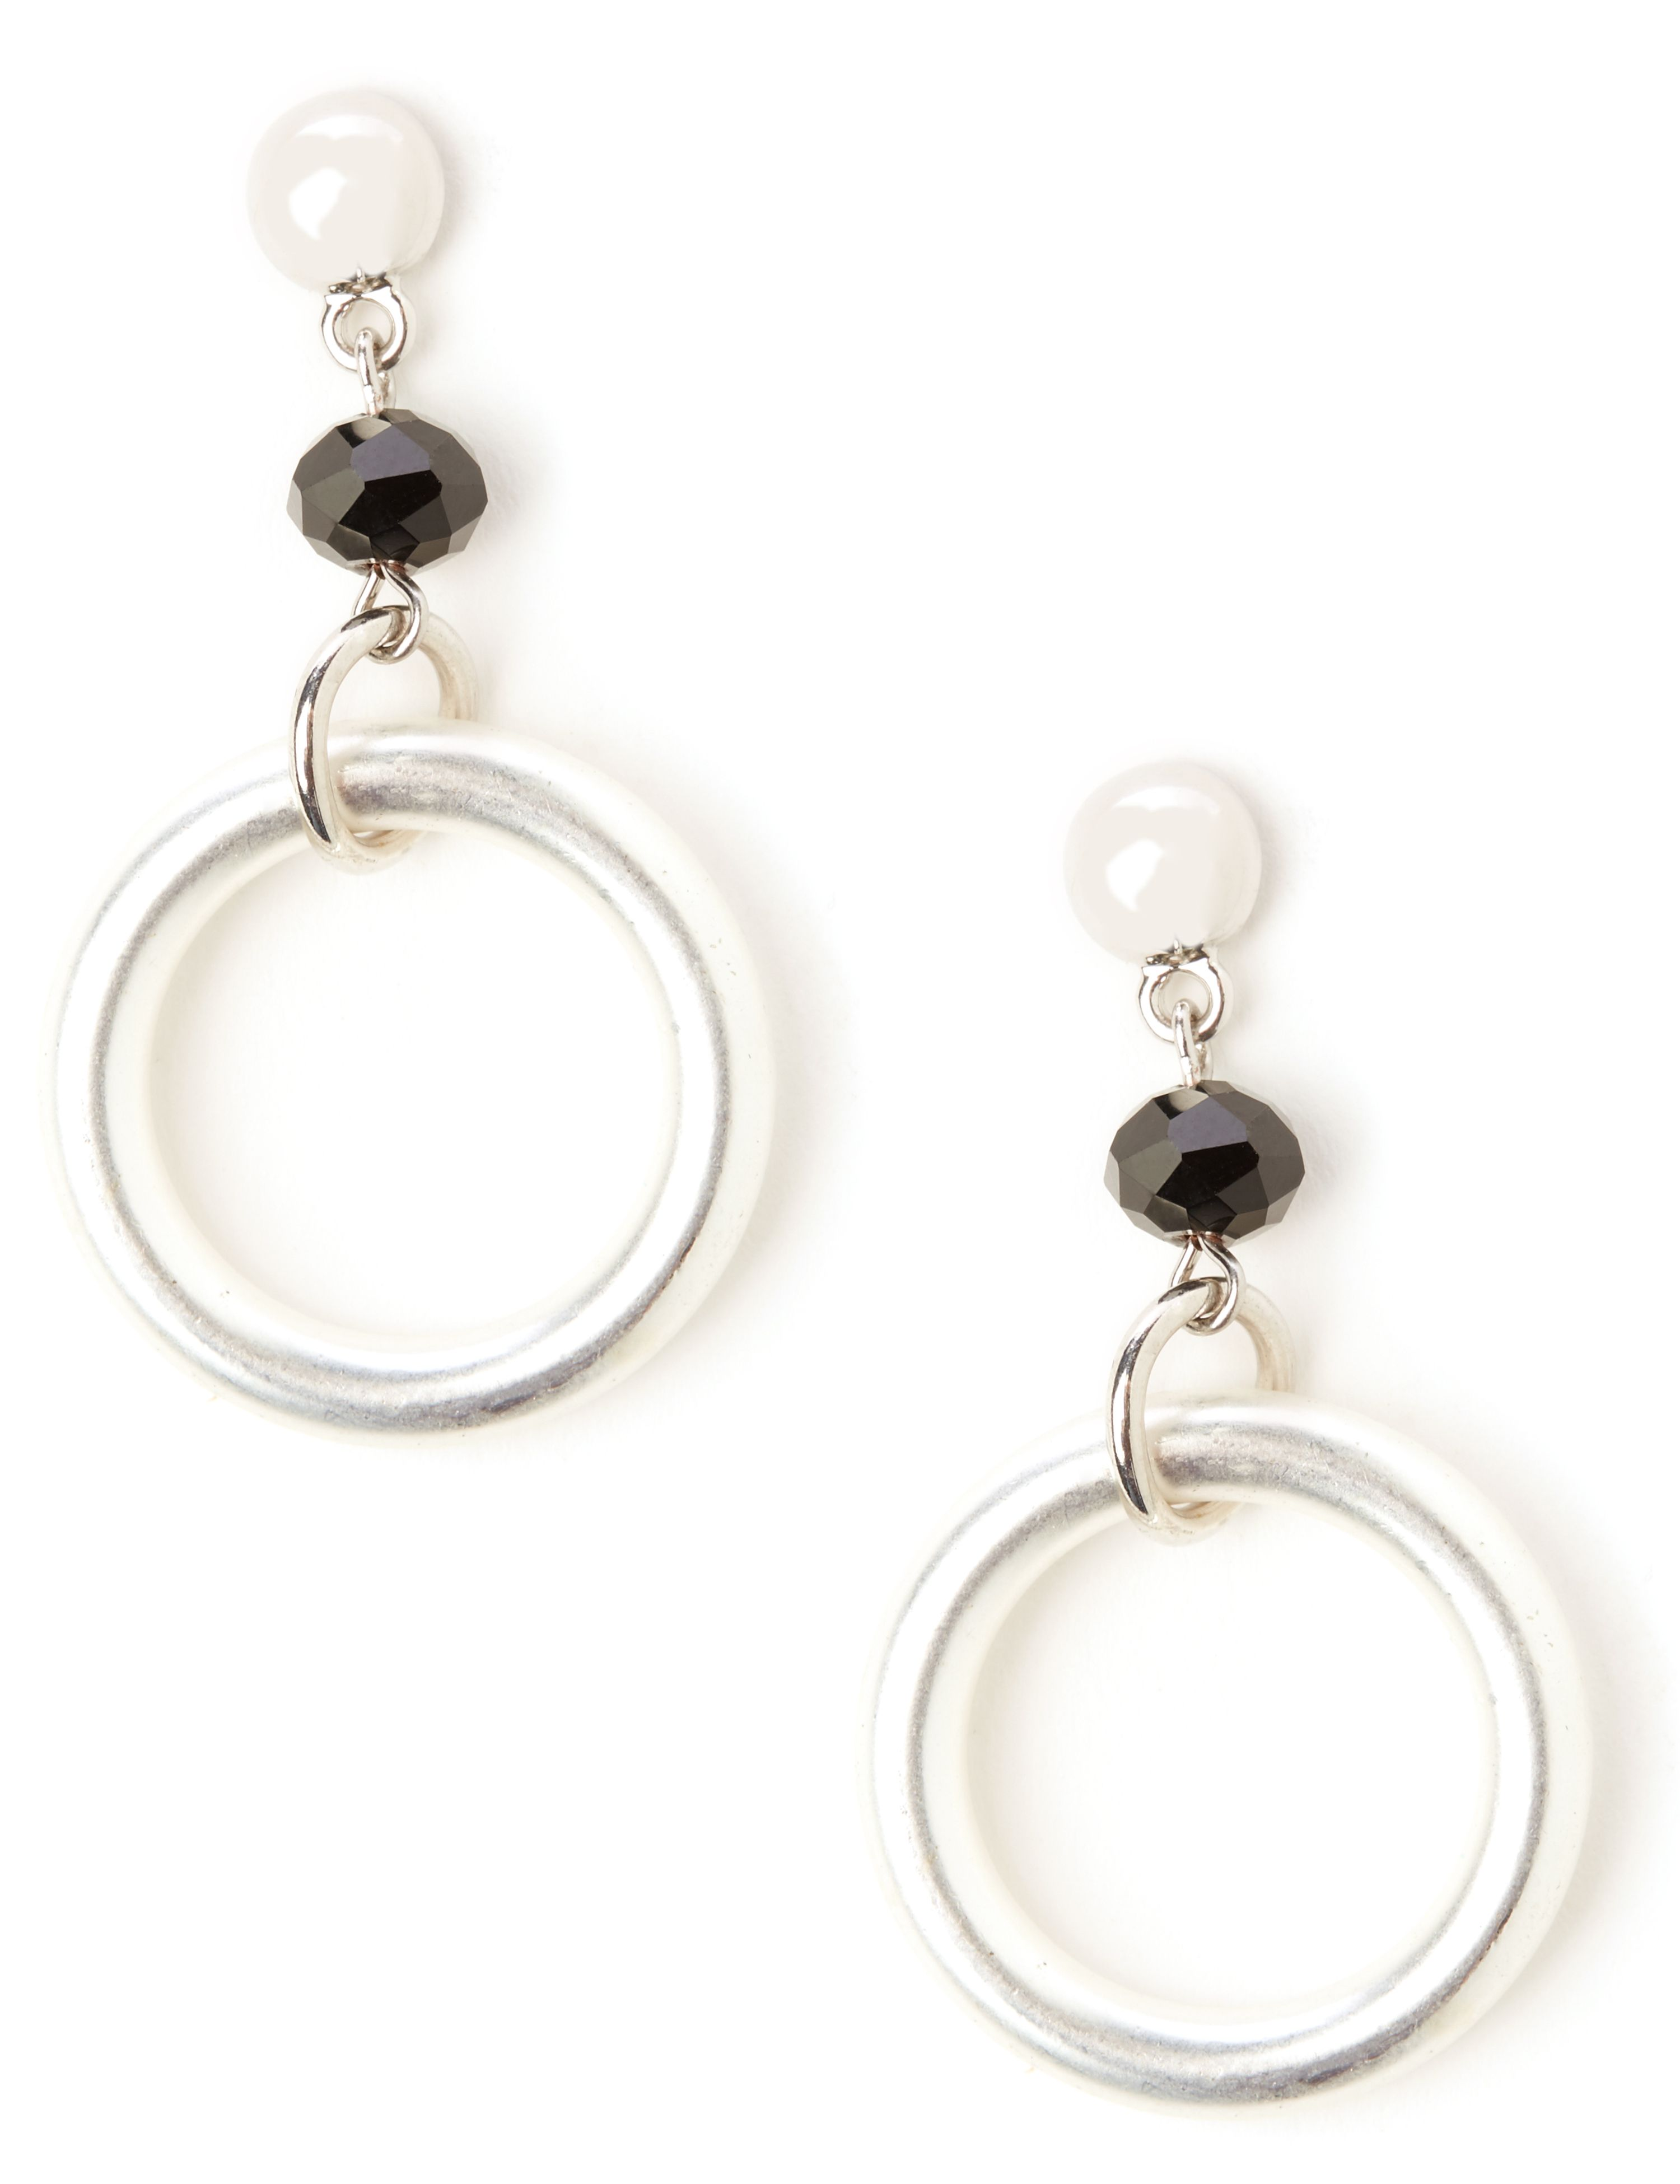 Loop & Layer Earrings NH Drop bead & ring PE KT0617E9 MP-300097843